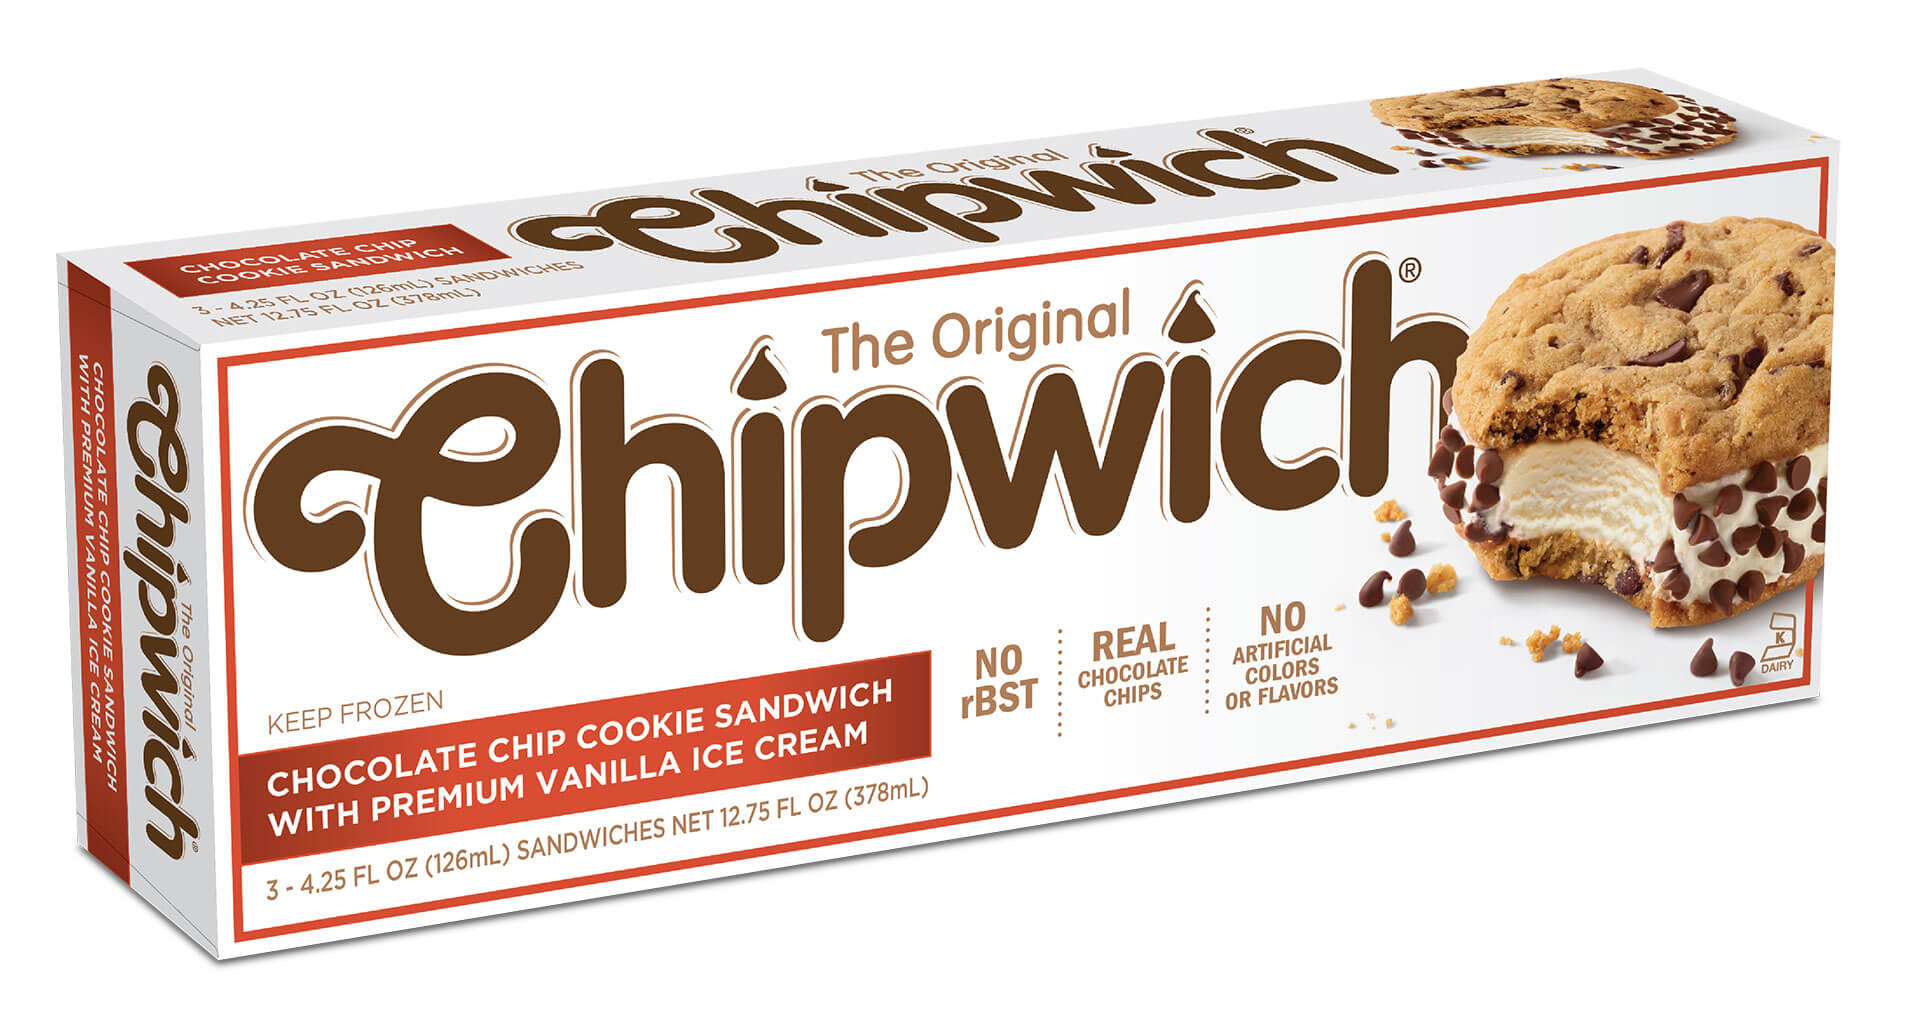 Chipwich Brand Packaging